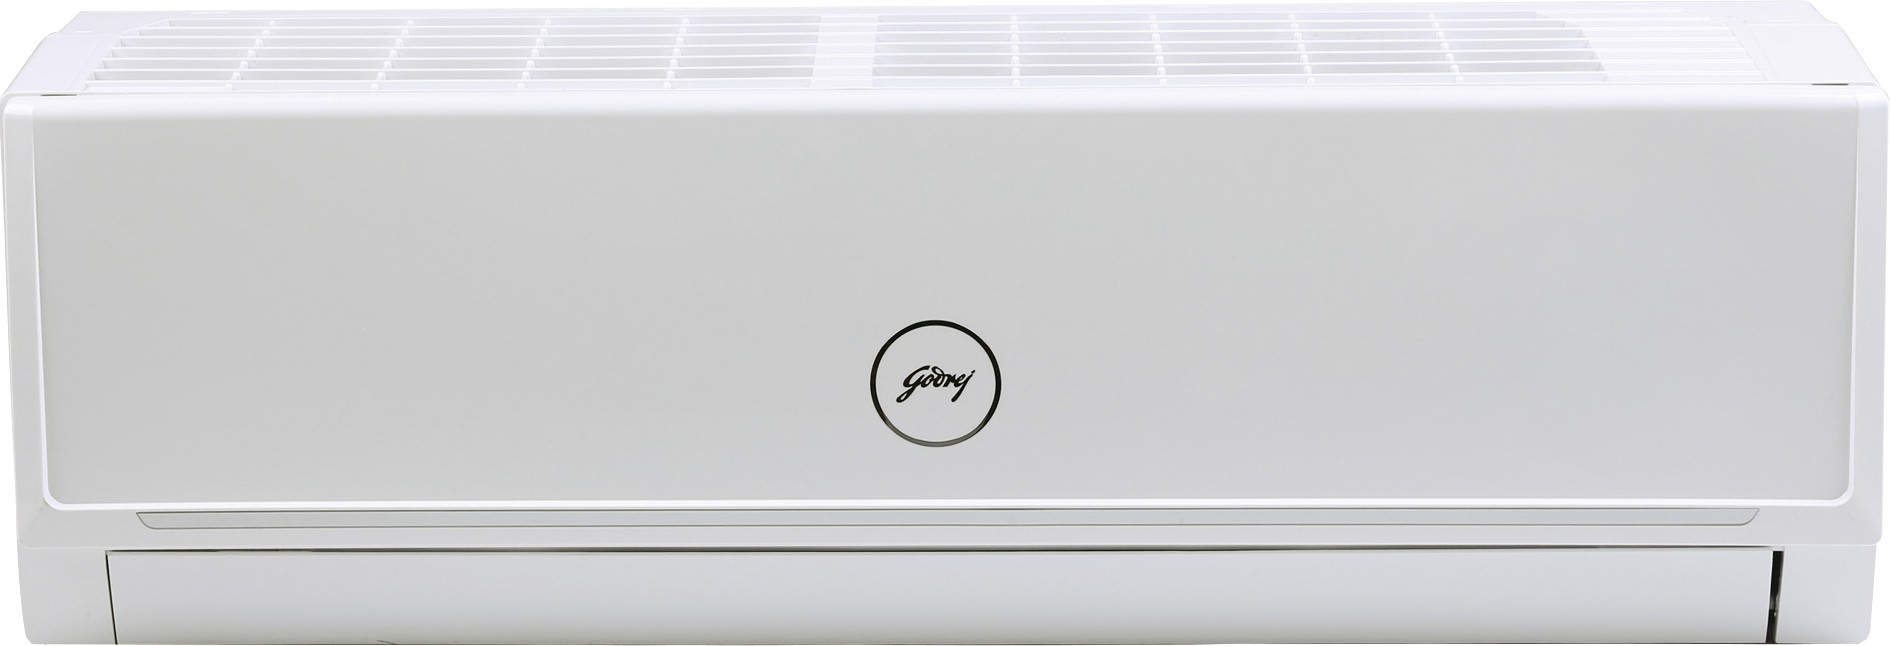 review voltas ac